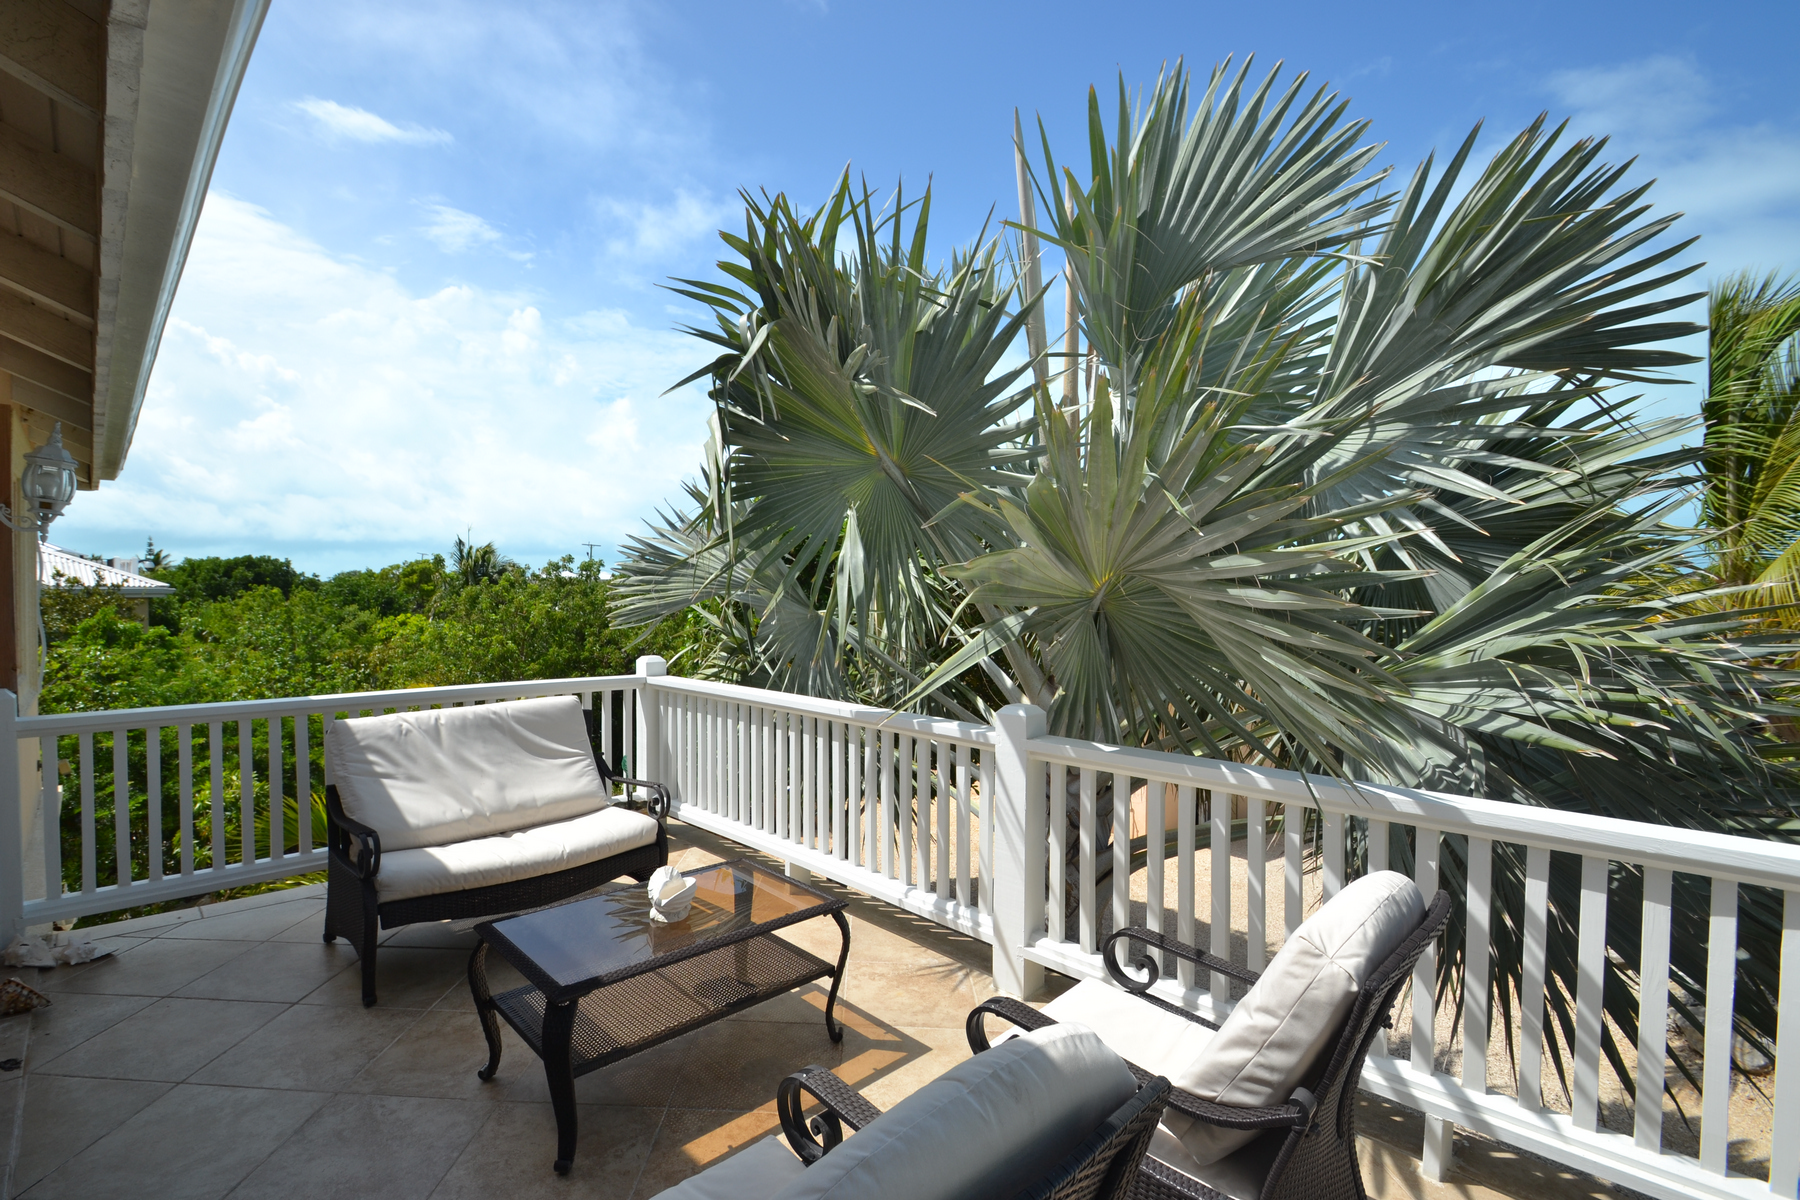 Additional photo for property listing at Discovery Bay Canalfront Discovery Bay Villa, Canalfront Discovery Bay, Providenciales TC Turks And Caicos Islands